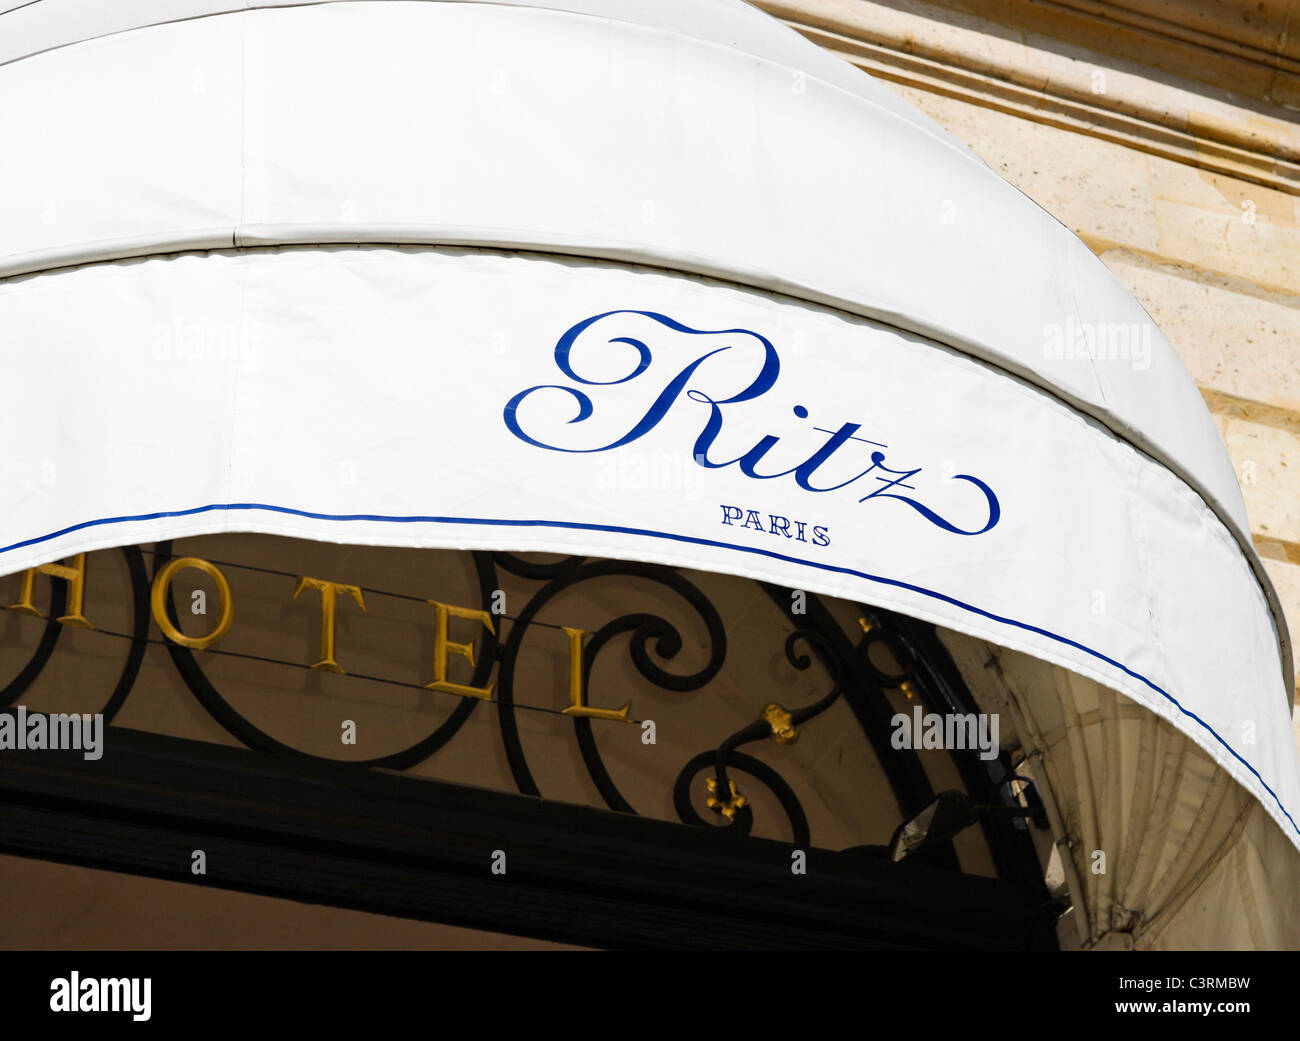 Awning over the entrance to The Ritz Hotel, Place Vendome, Paris, France - Stock Image